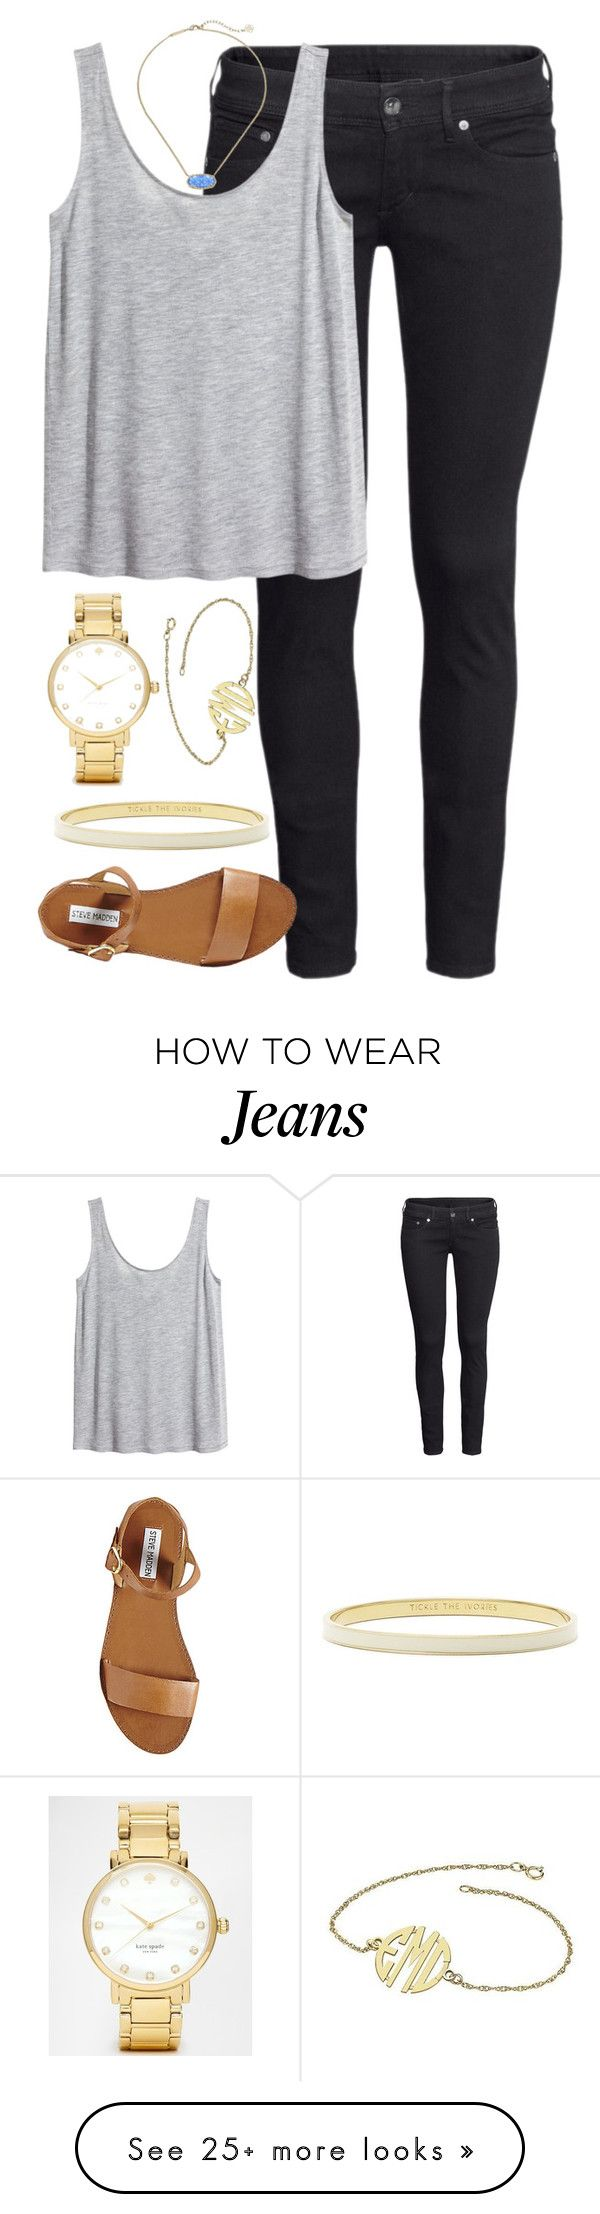 """jeans"" by whitegirlsets on Polyvore featuring H&M, Steve Madden, Kate Spade and Kendra Scott"